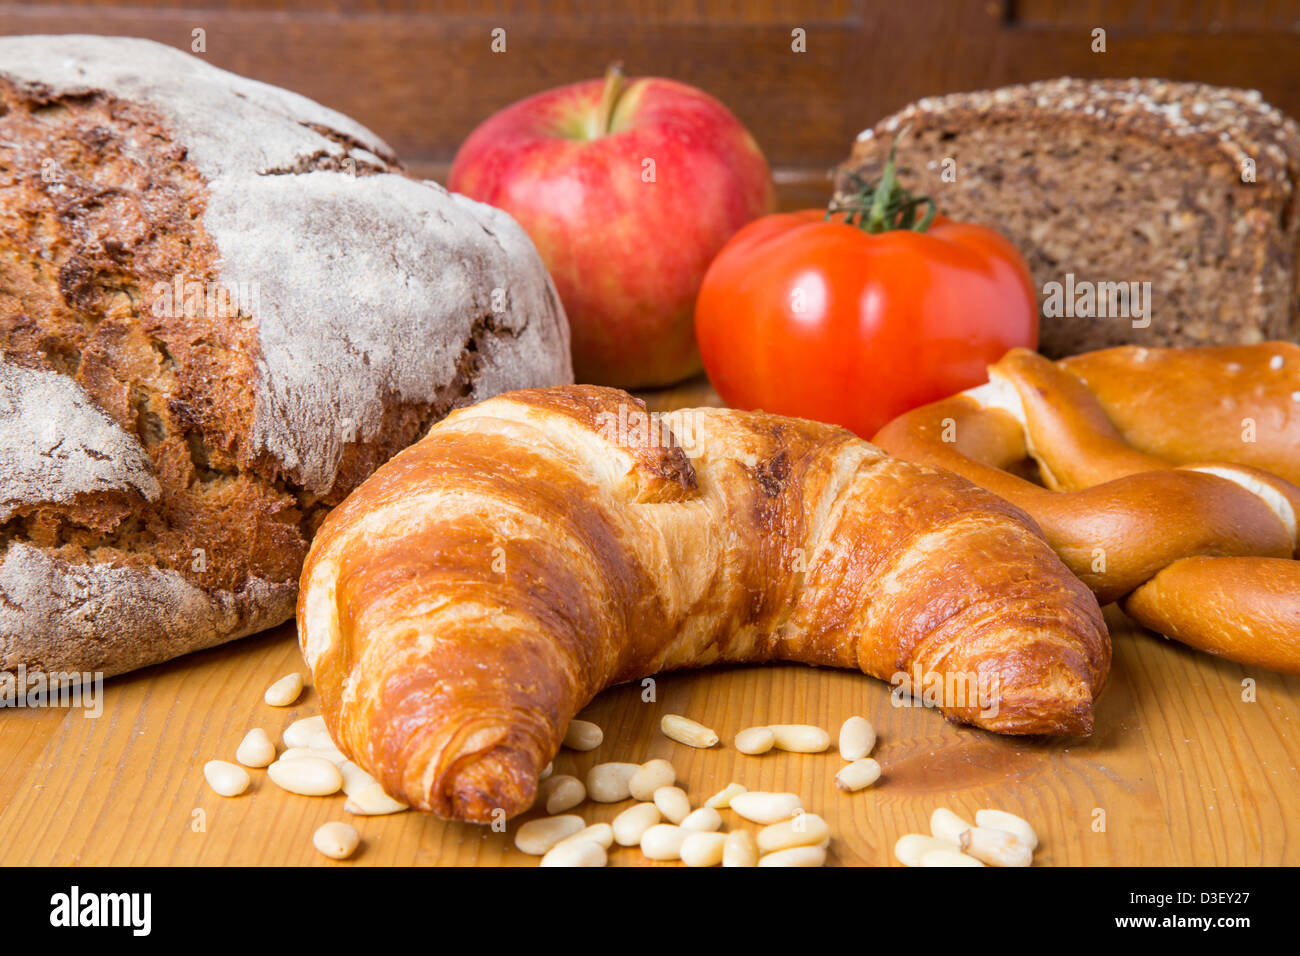 Different types of food such as bread, a tomato, apple, pine seeds and a pretzel Stock Photo